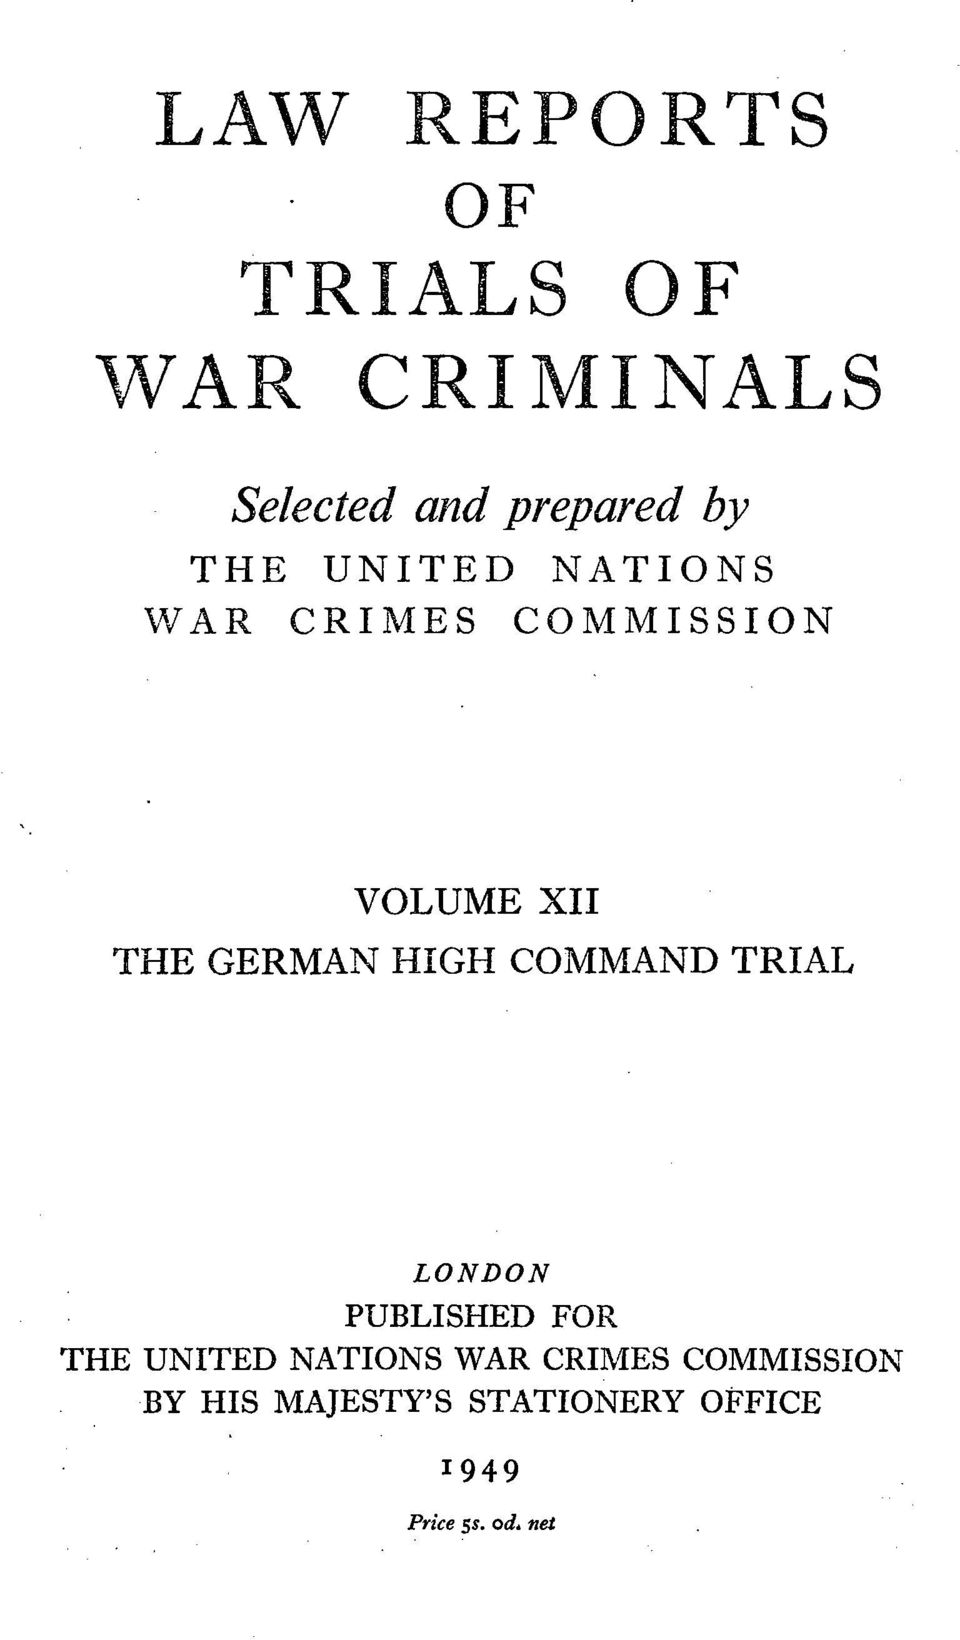 HIGH COMMAND TRIAL LONDON PUBLISHED FOR THE UNITED NATIONS WAR